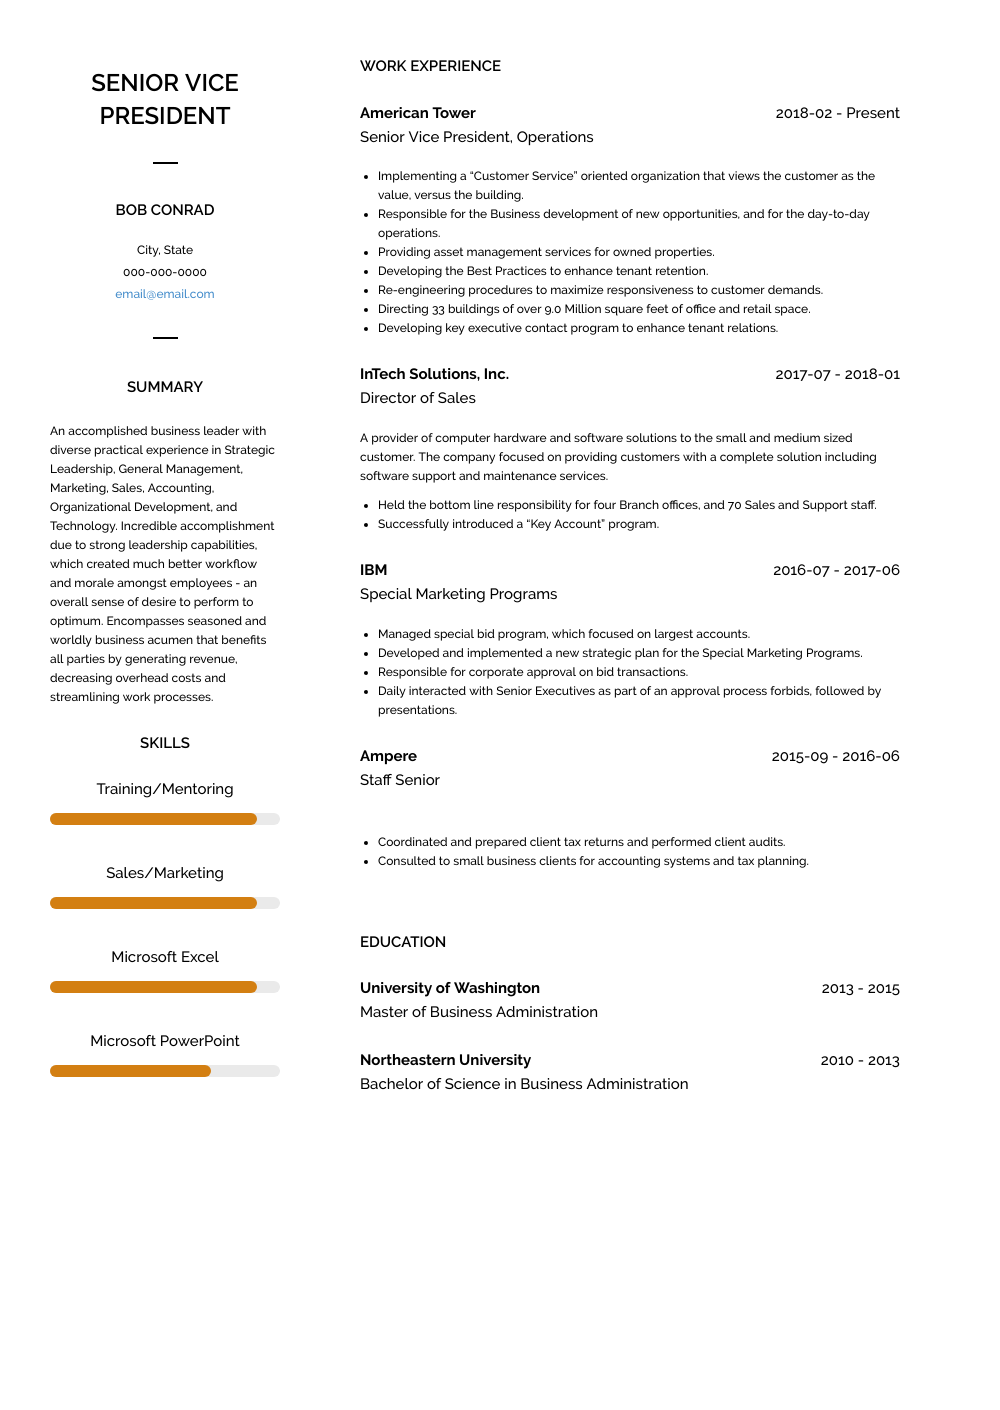 Senior Vice President - Resume Samples and Templates | VisualCV